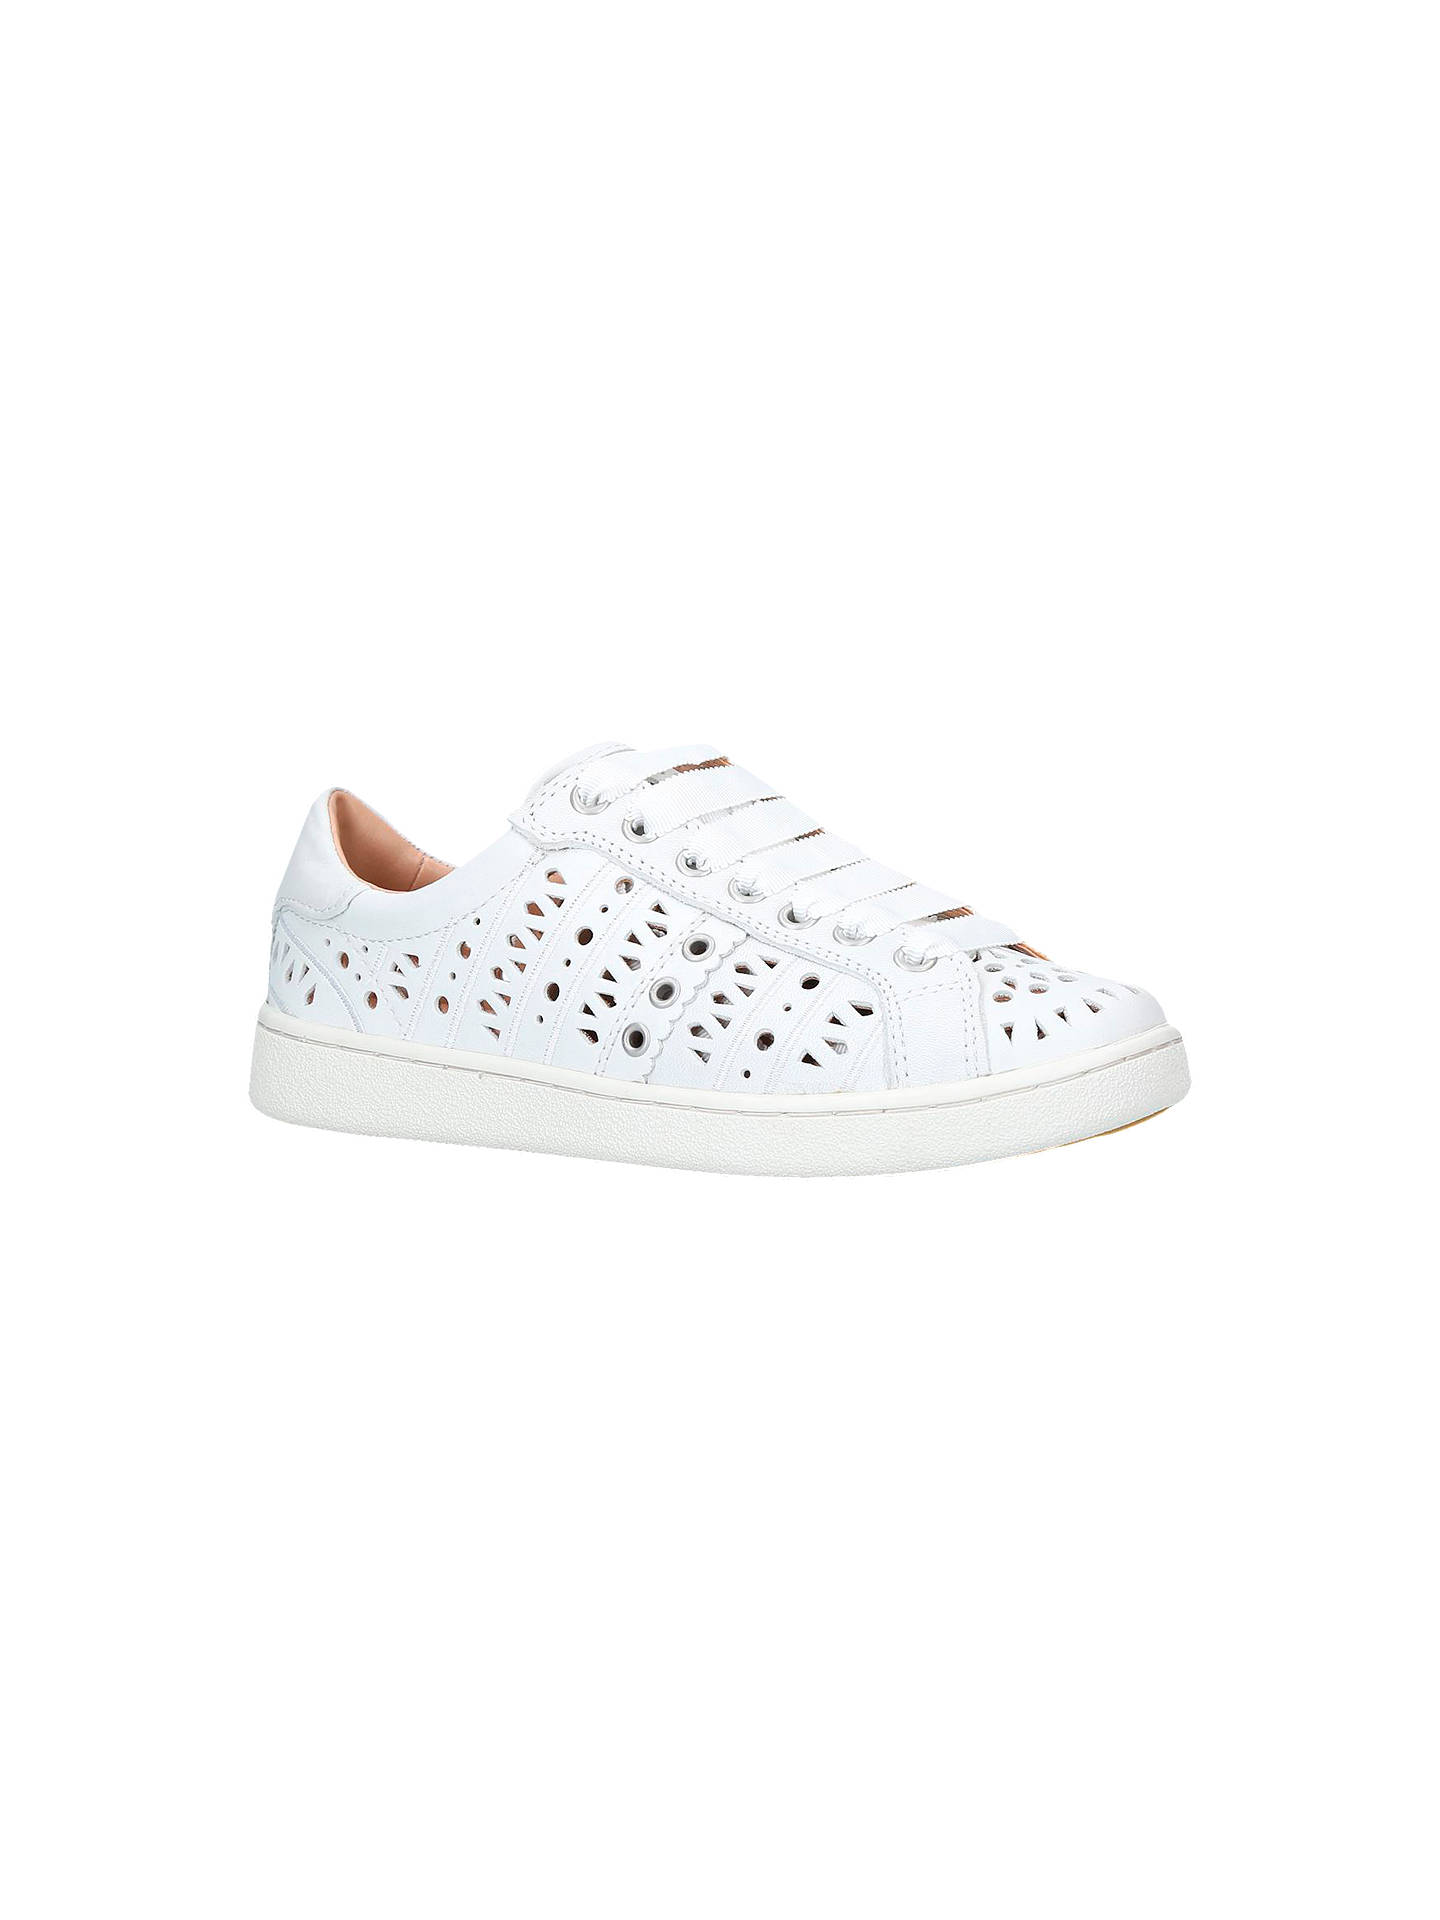 d00e2bf252f UGG Milo Perforated Lace Up Trainers at John Lewis & Partners